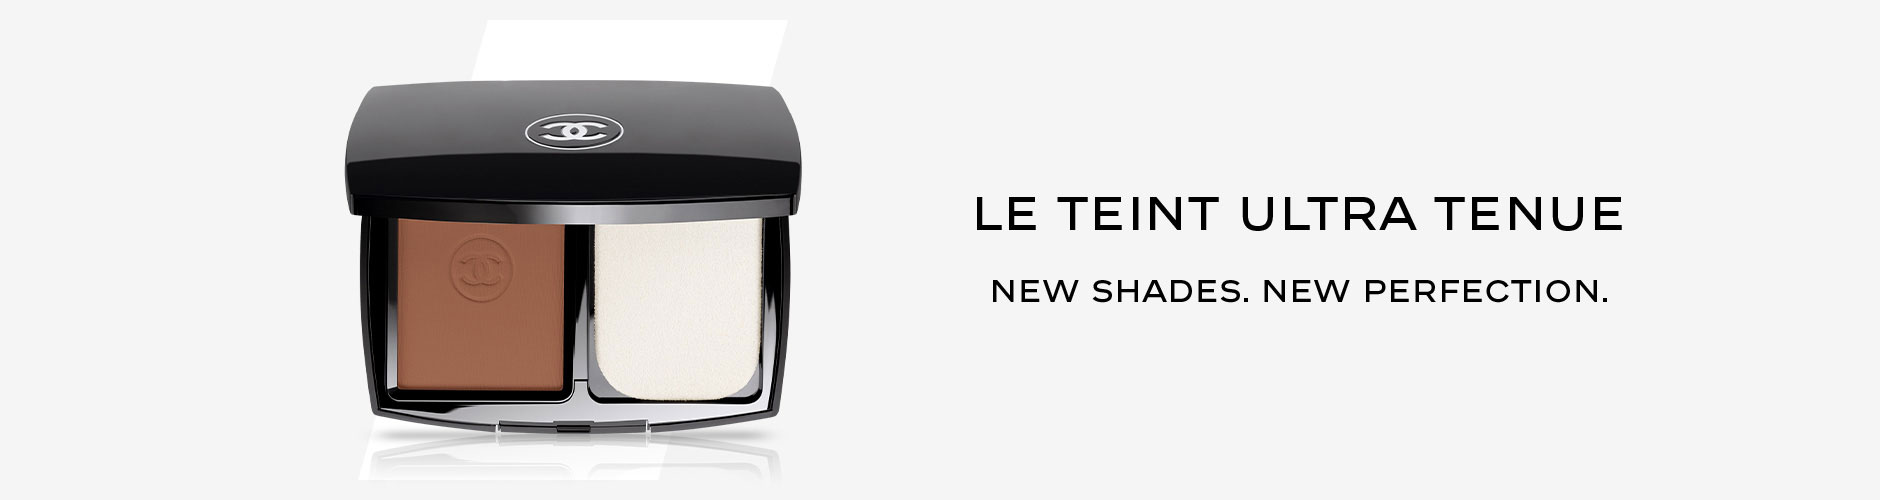 Le Teint Ultra Tenue - New Shades. New Perfection.